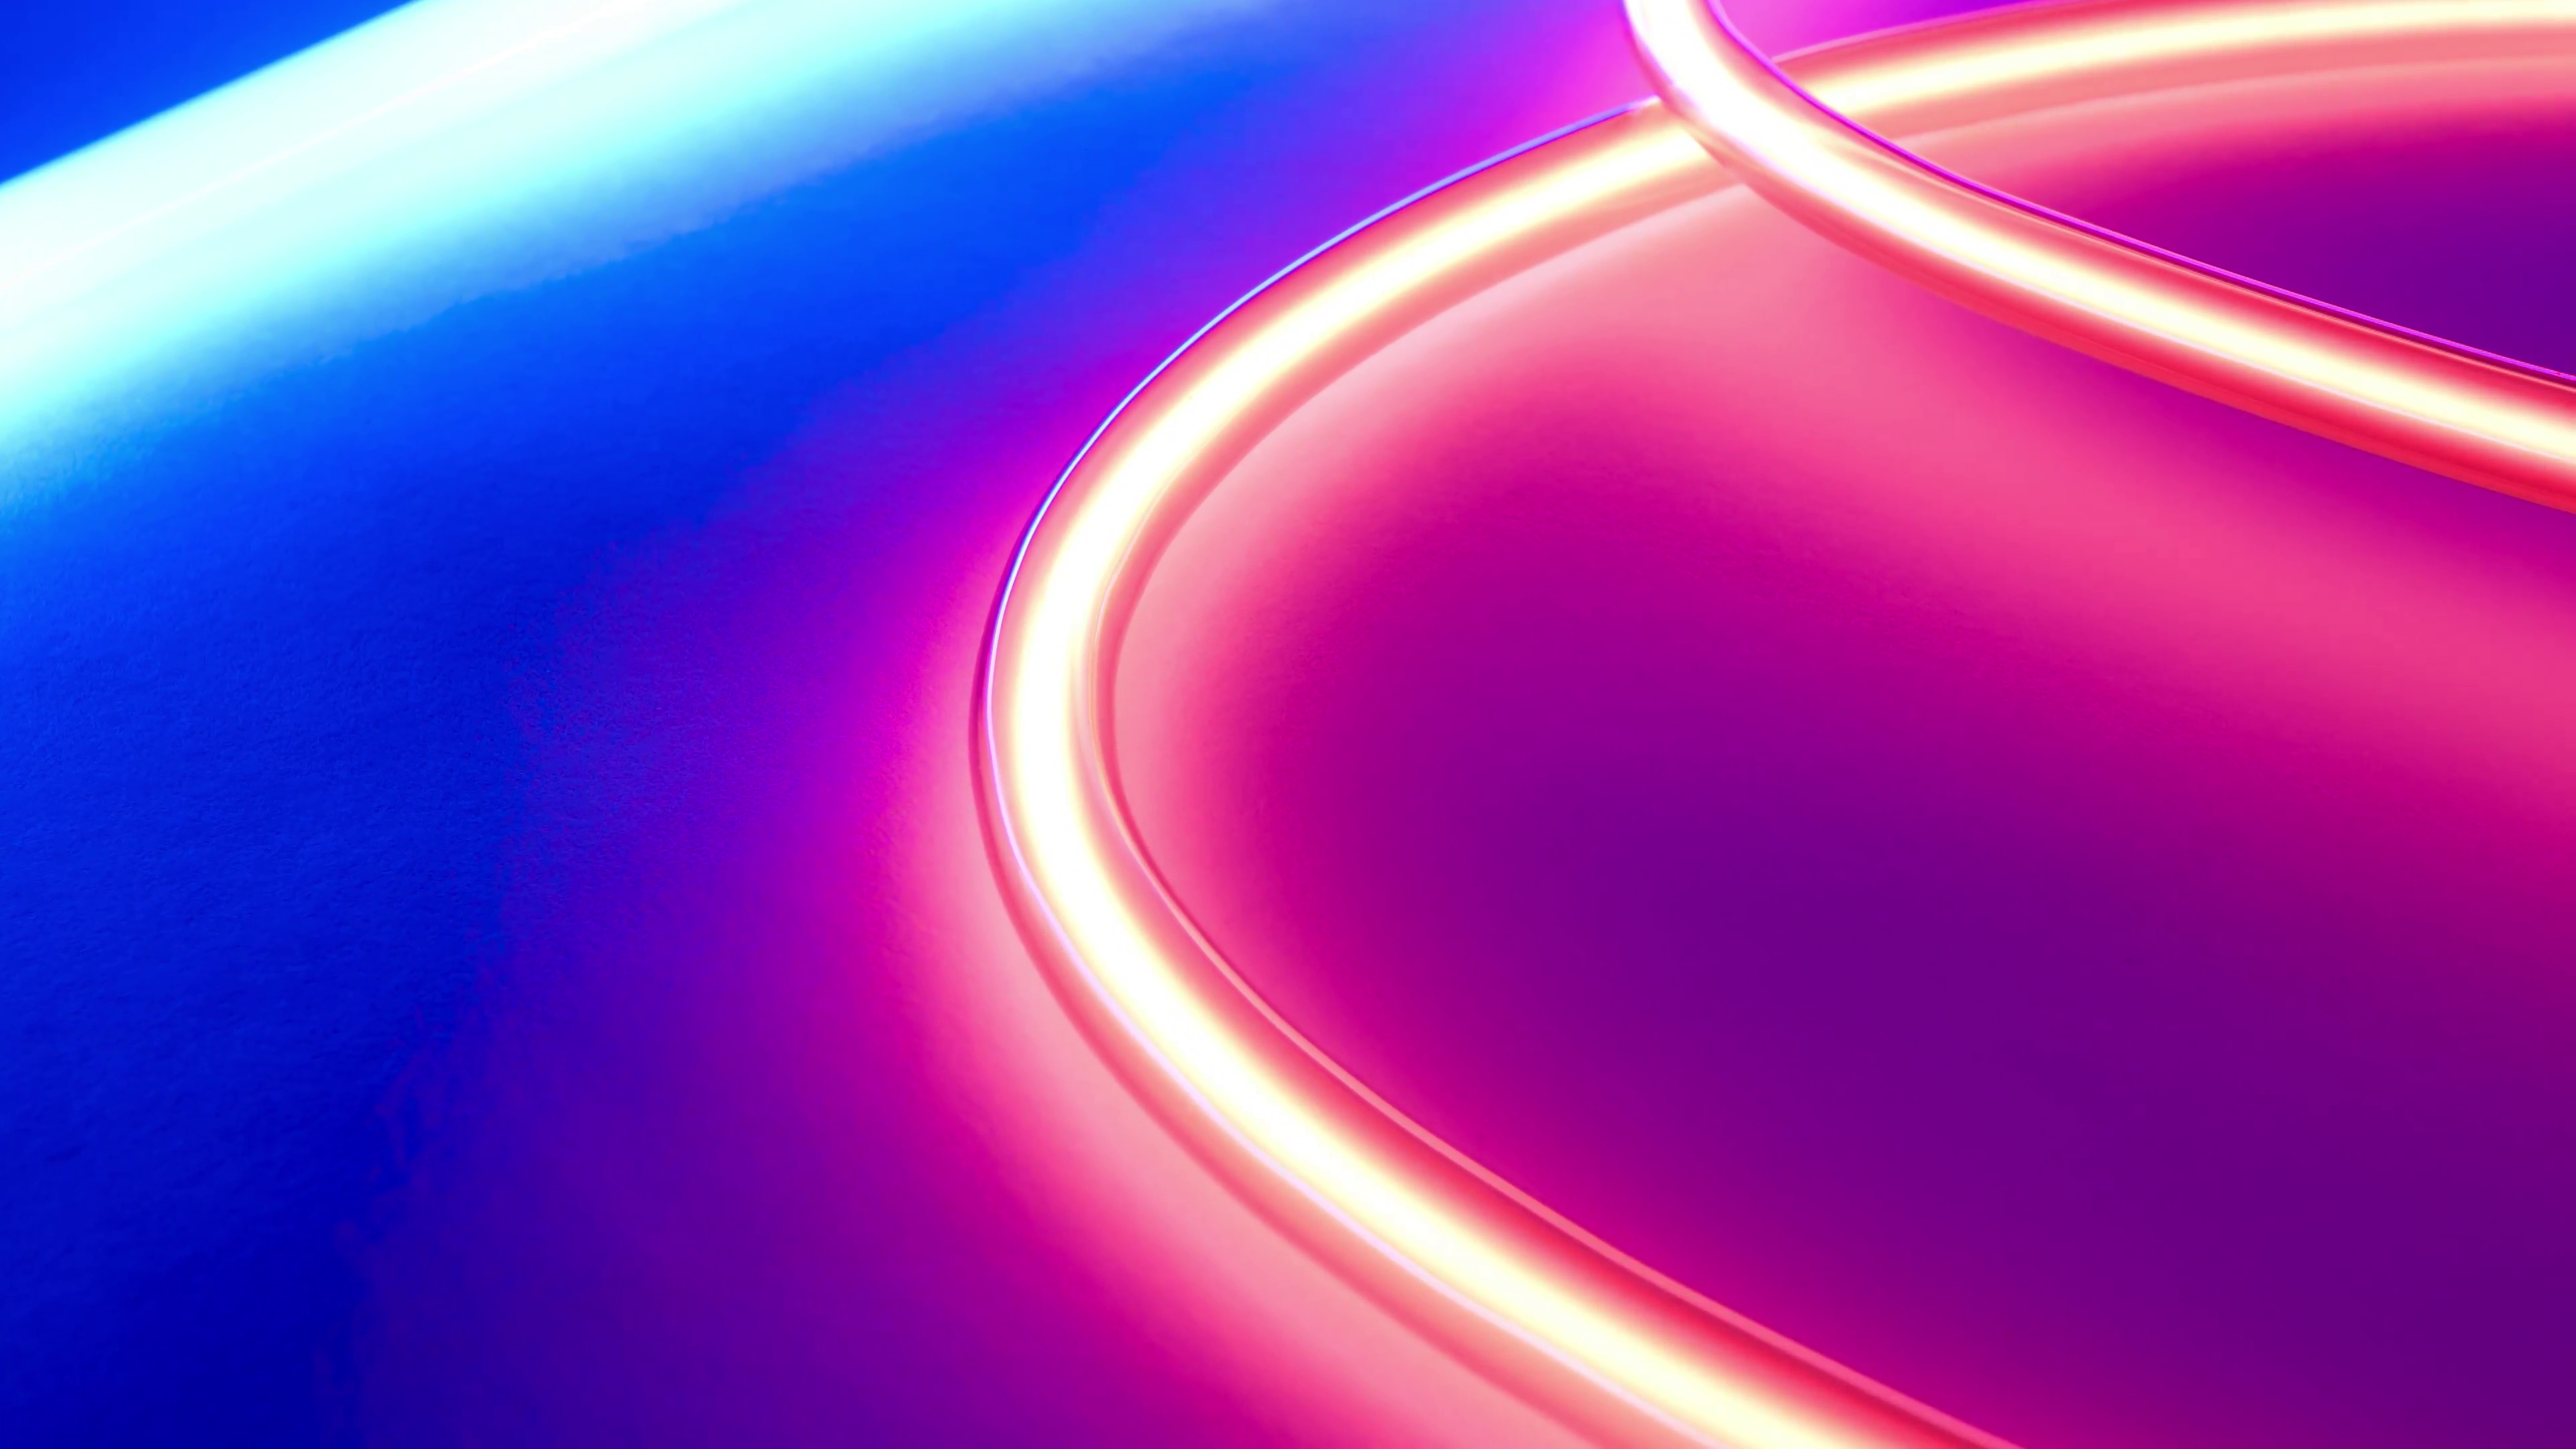 Abstract neon lights background 4k Stock Video Footage - Videoblocks